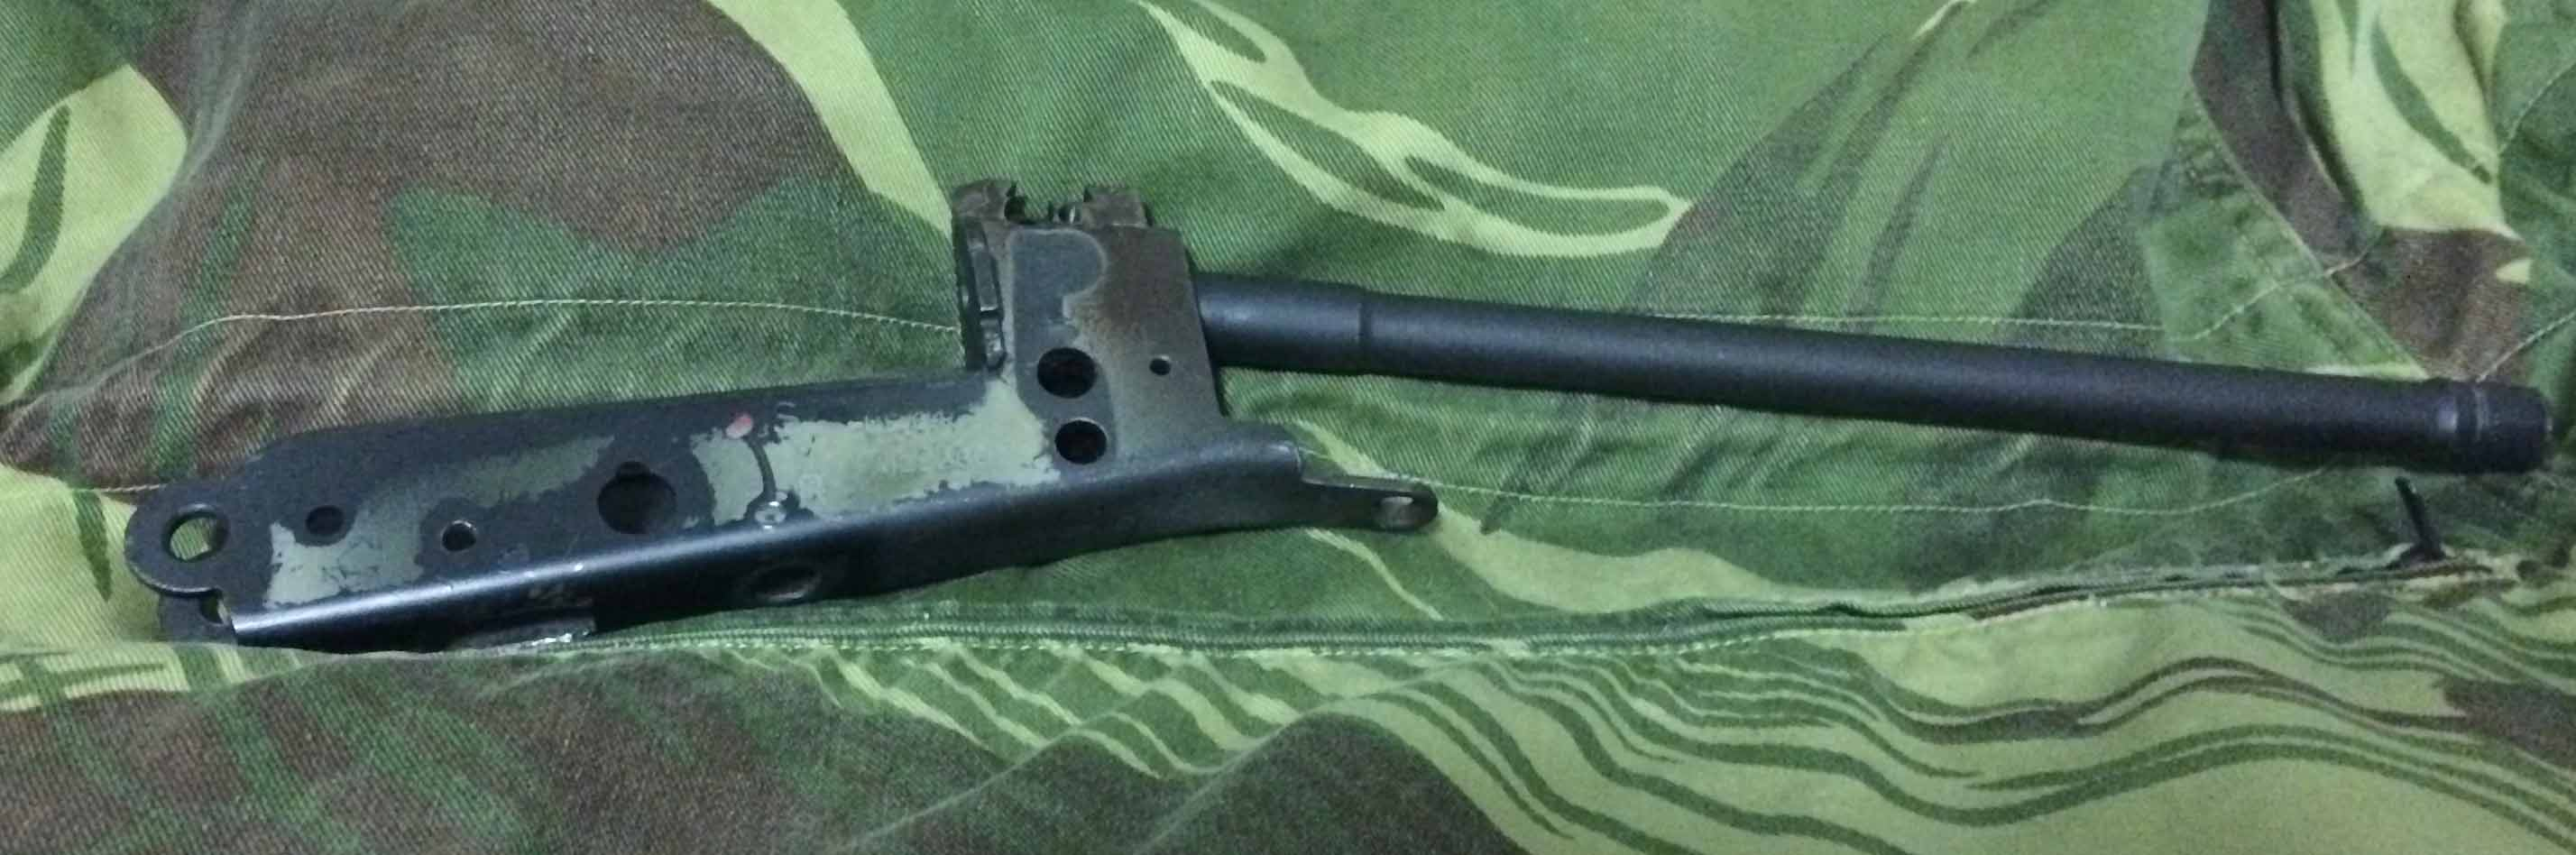 FN FAL (L1A1) Upper and Lower Receiver Blueprints